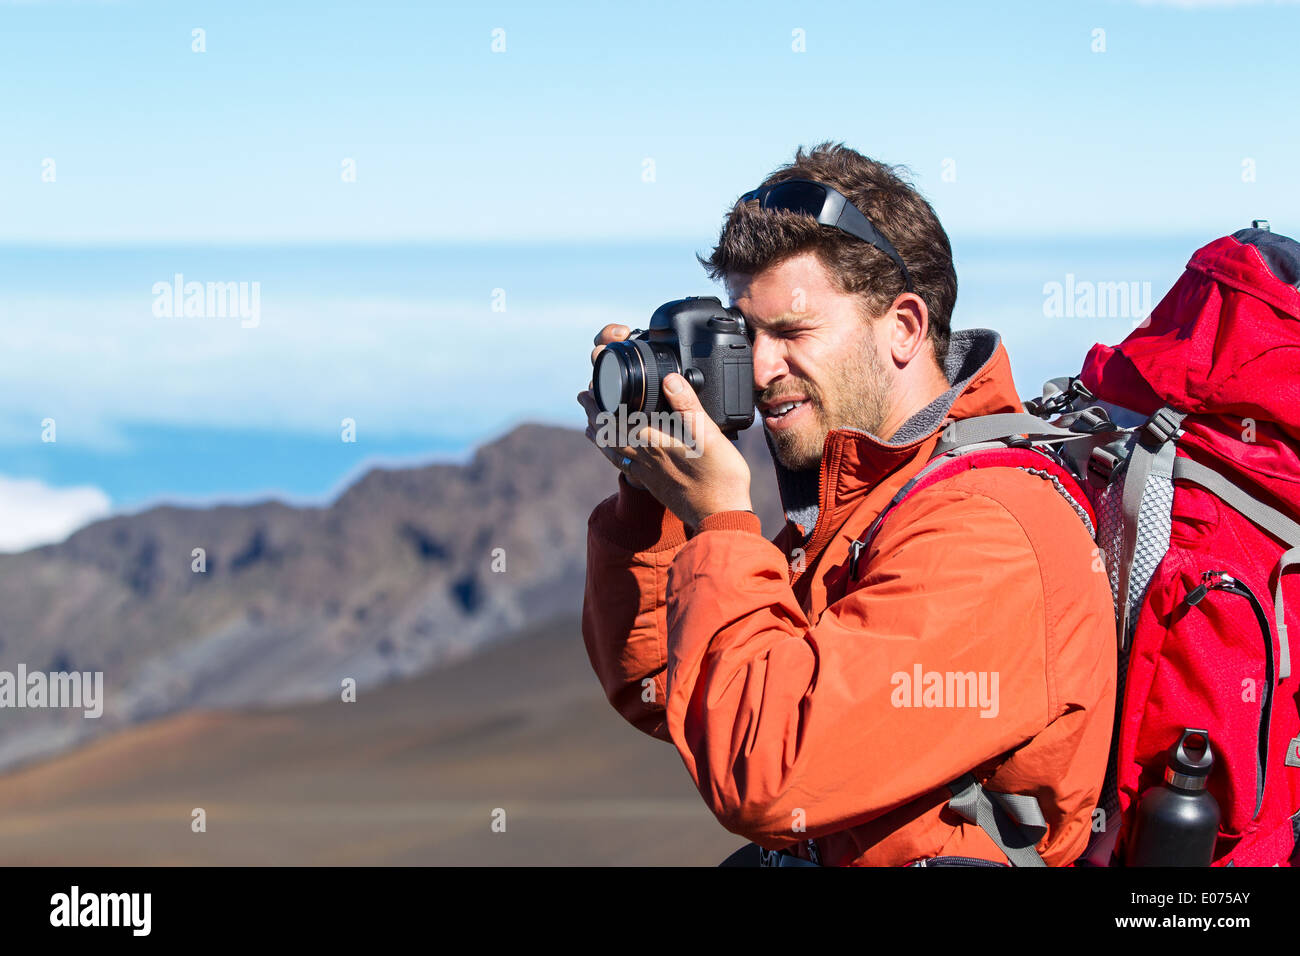 Nature photographer taking pictures outdoors on hiking trip in the mountains - Stock Image